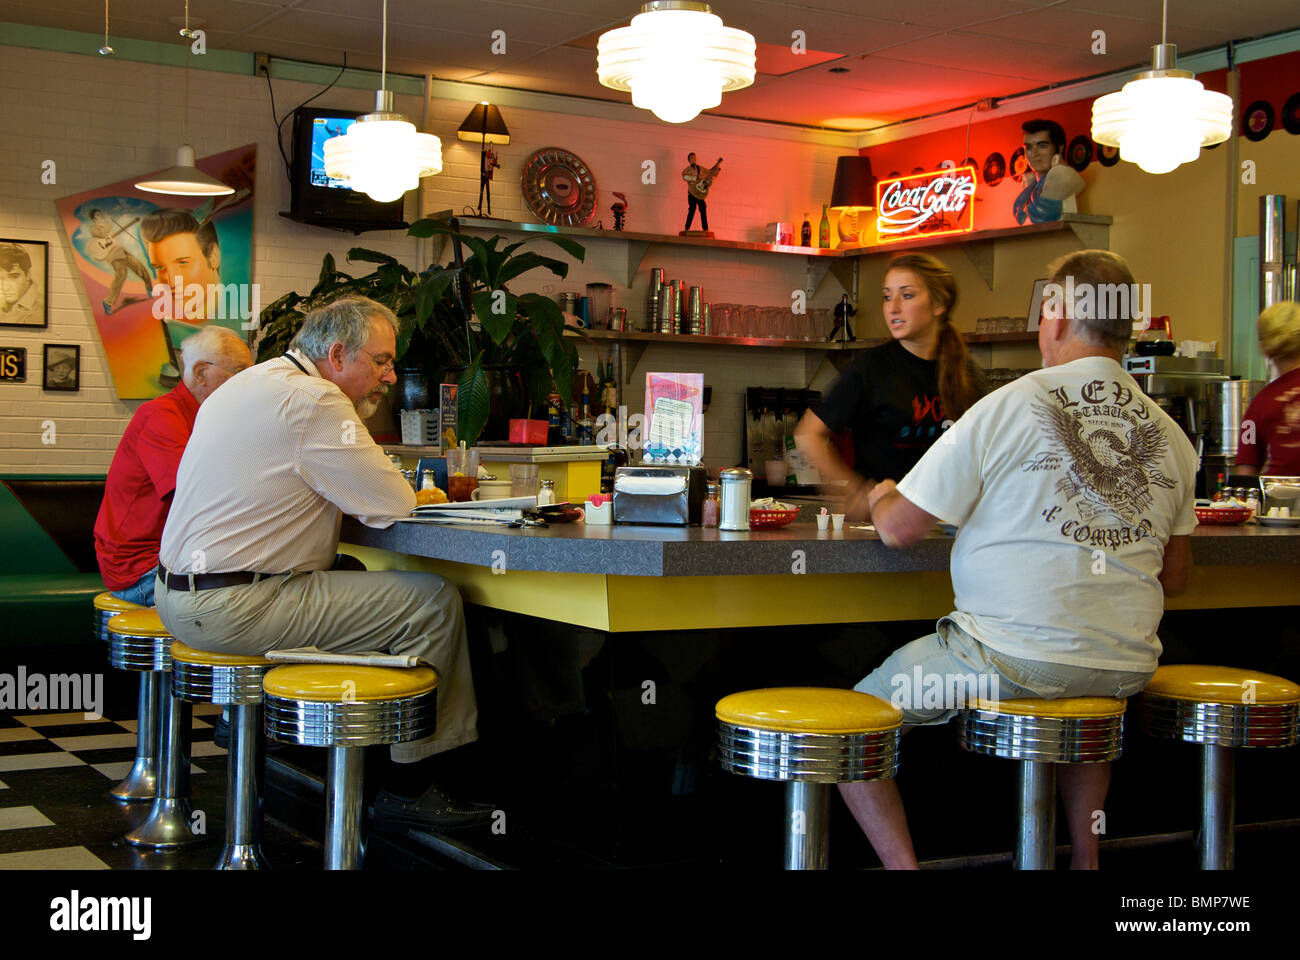 Patrons Sitting On Chrome Trimmed Stools At Cafe Bar